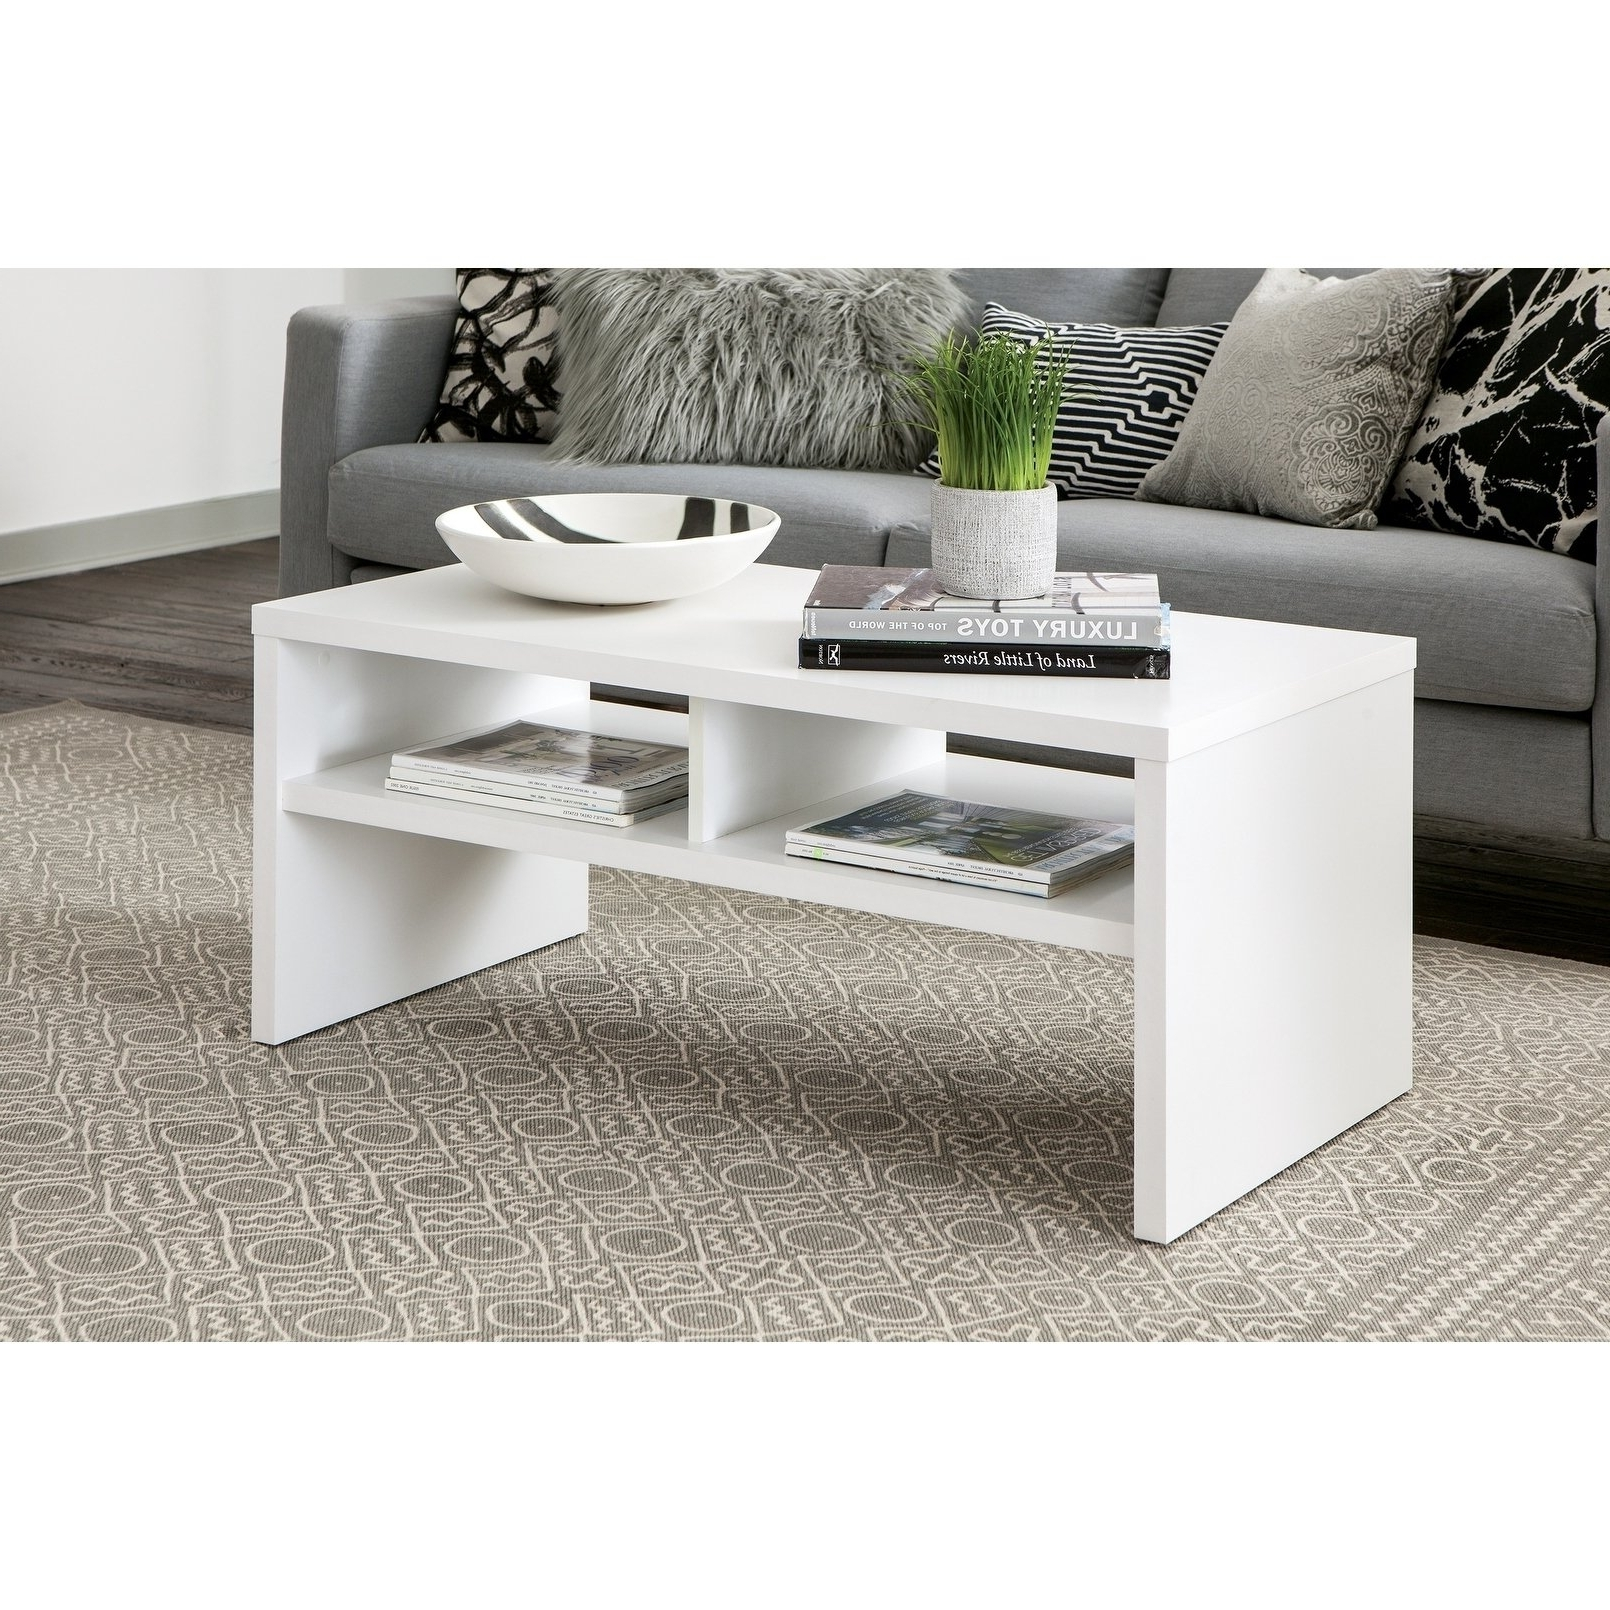 Preferred Modular Coffee Tables Regarding Shop Closetmaid Modular Coffee Table – Free Shipping Today (View 14 of 20)